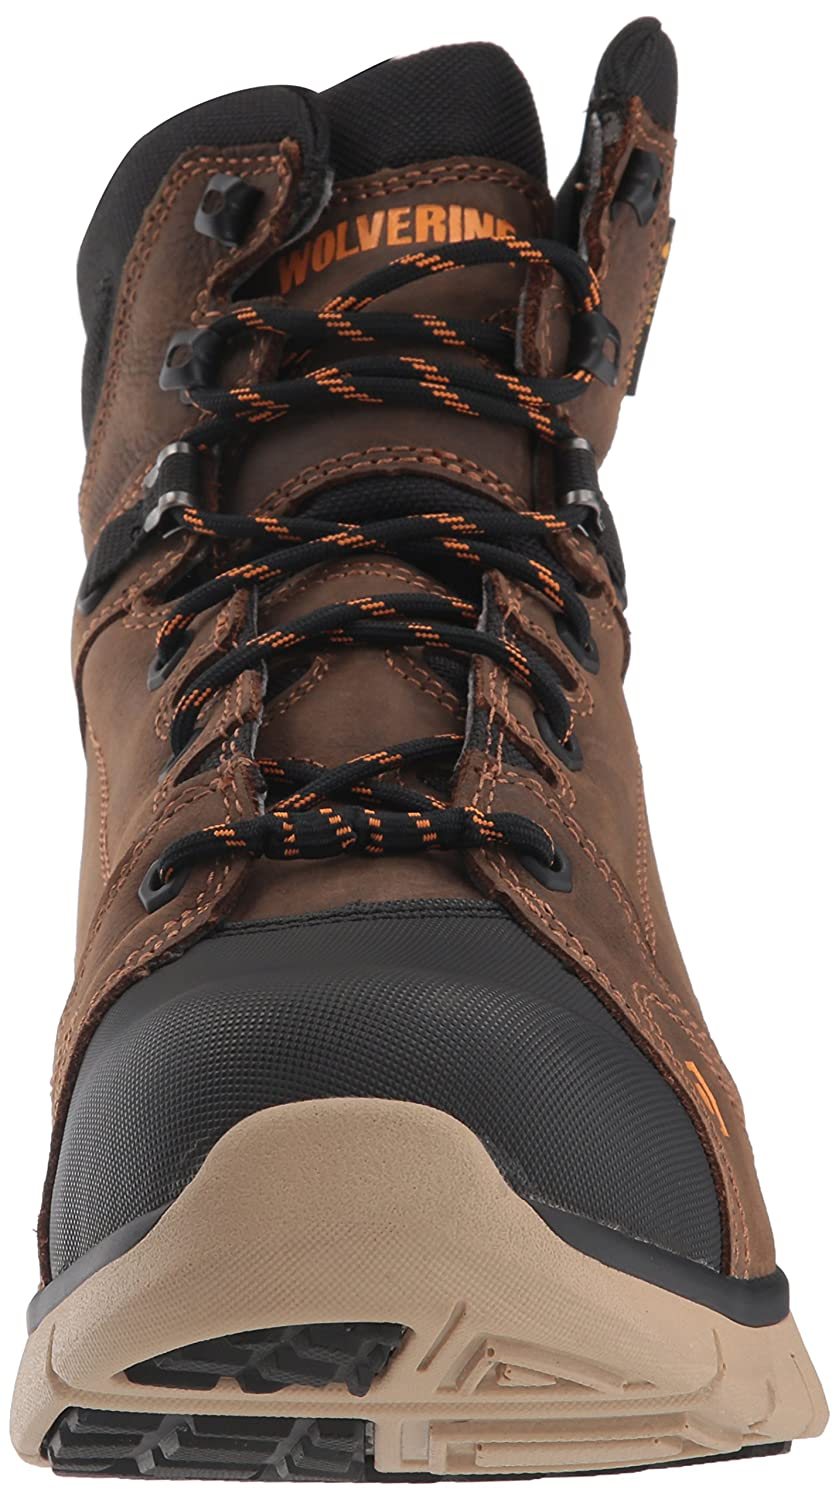 1834eae85c8 Wolverine Men's Rigger WPF Composite-Toe Mid Wedge Construction Boot